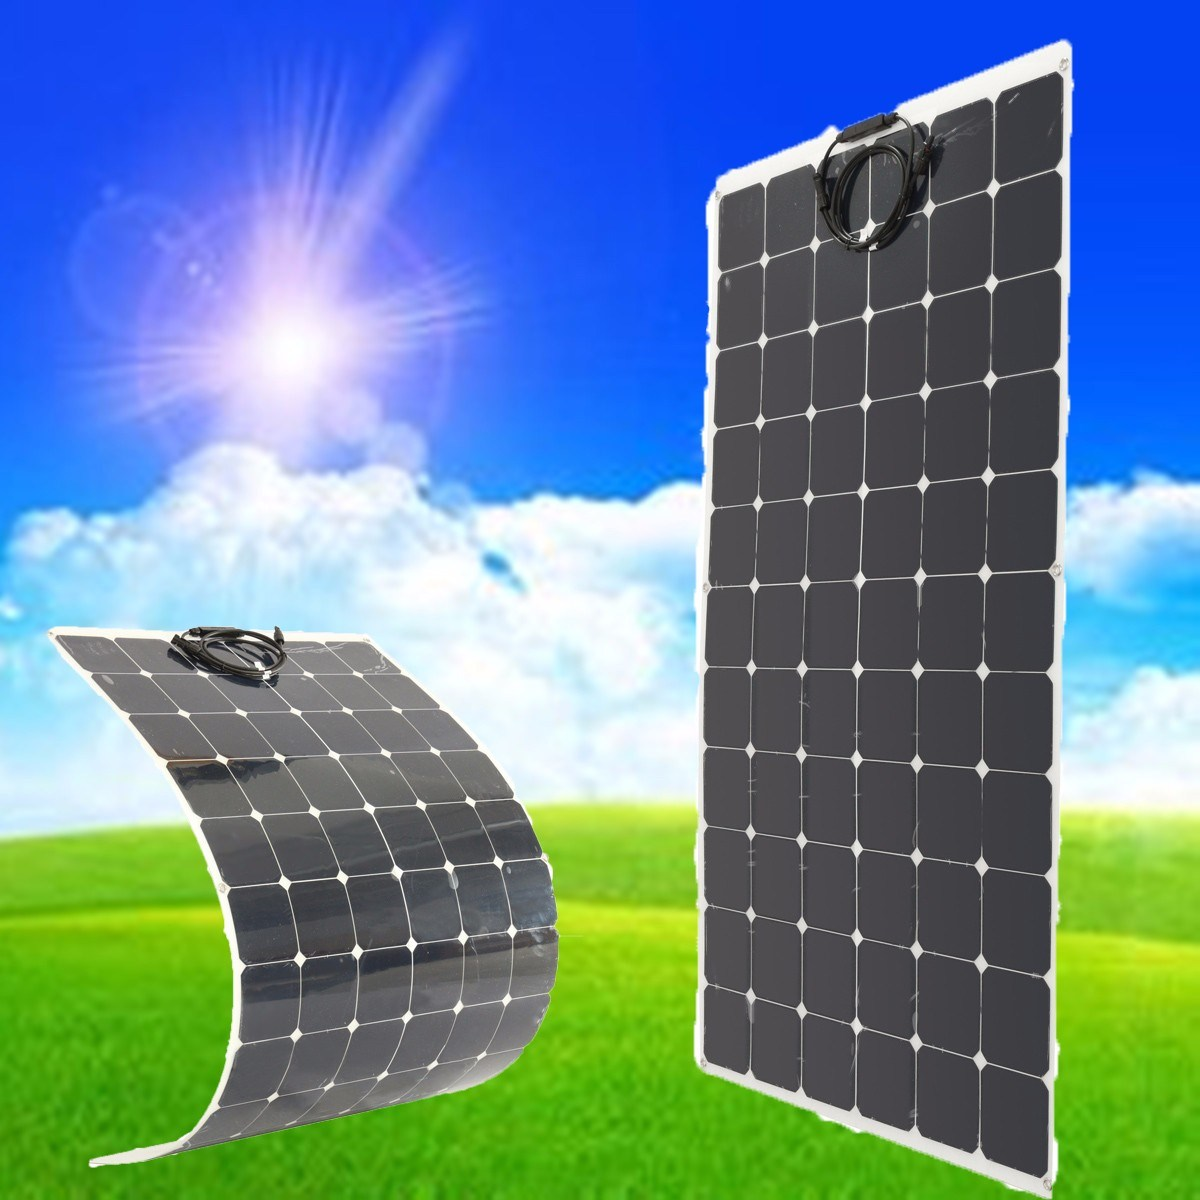 BSP 66-200 200W 18V Semi Flexible Monocrystalline Solar Panel Waterproof High Conversion Efficiency Solar Panel + 1.5m Cable 50w 12v semi flexible monocrystalline silicon solar panel solar battery power generater for battery rv car boat aircraft tourism